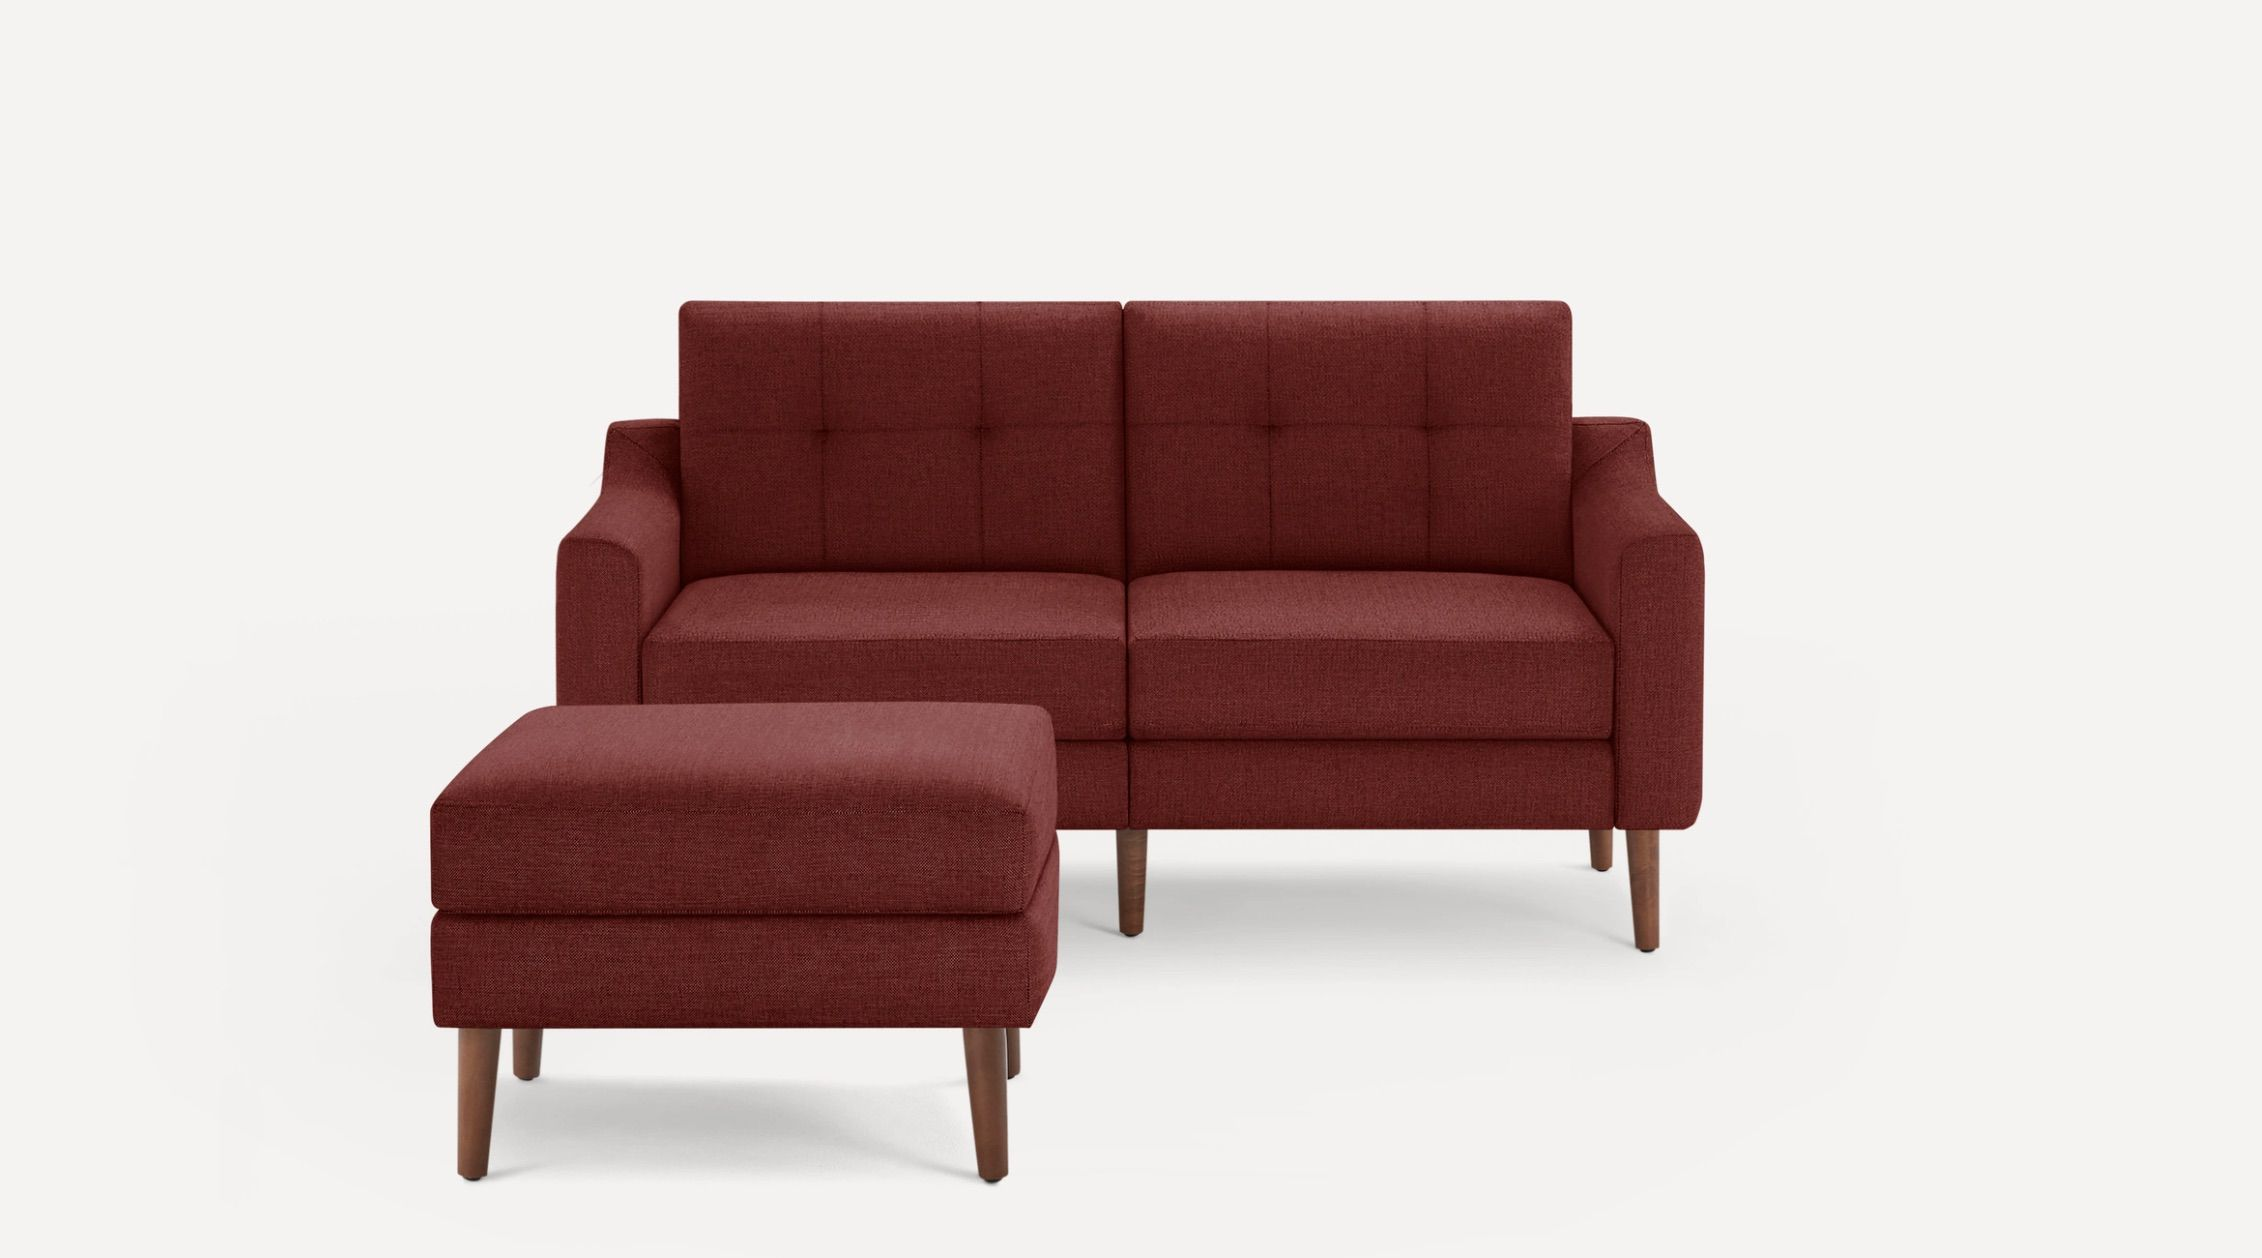 Slope Nomad Loveseat with Ottoman